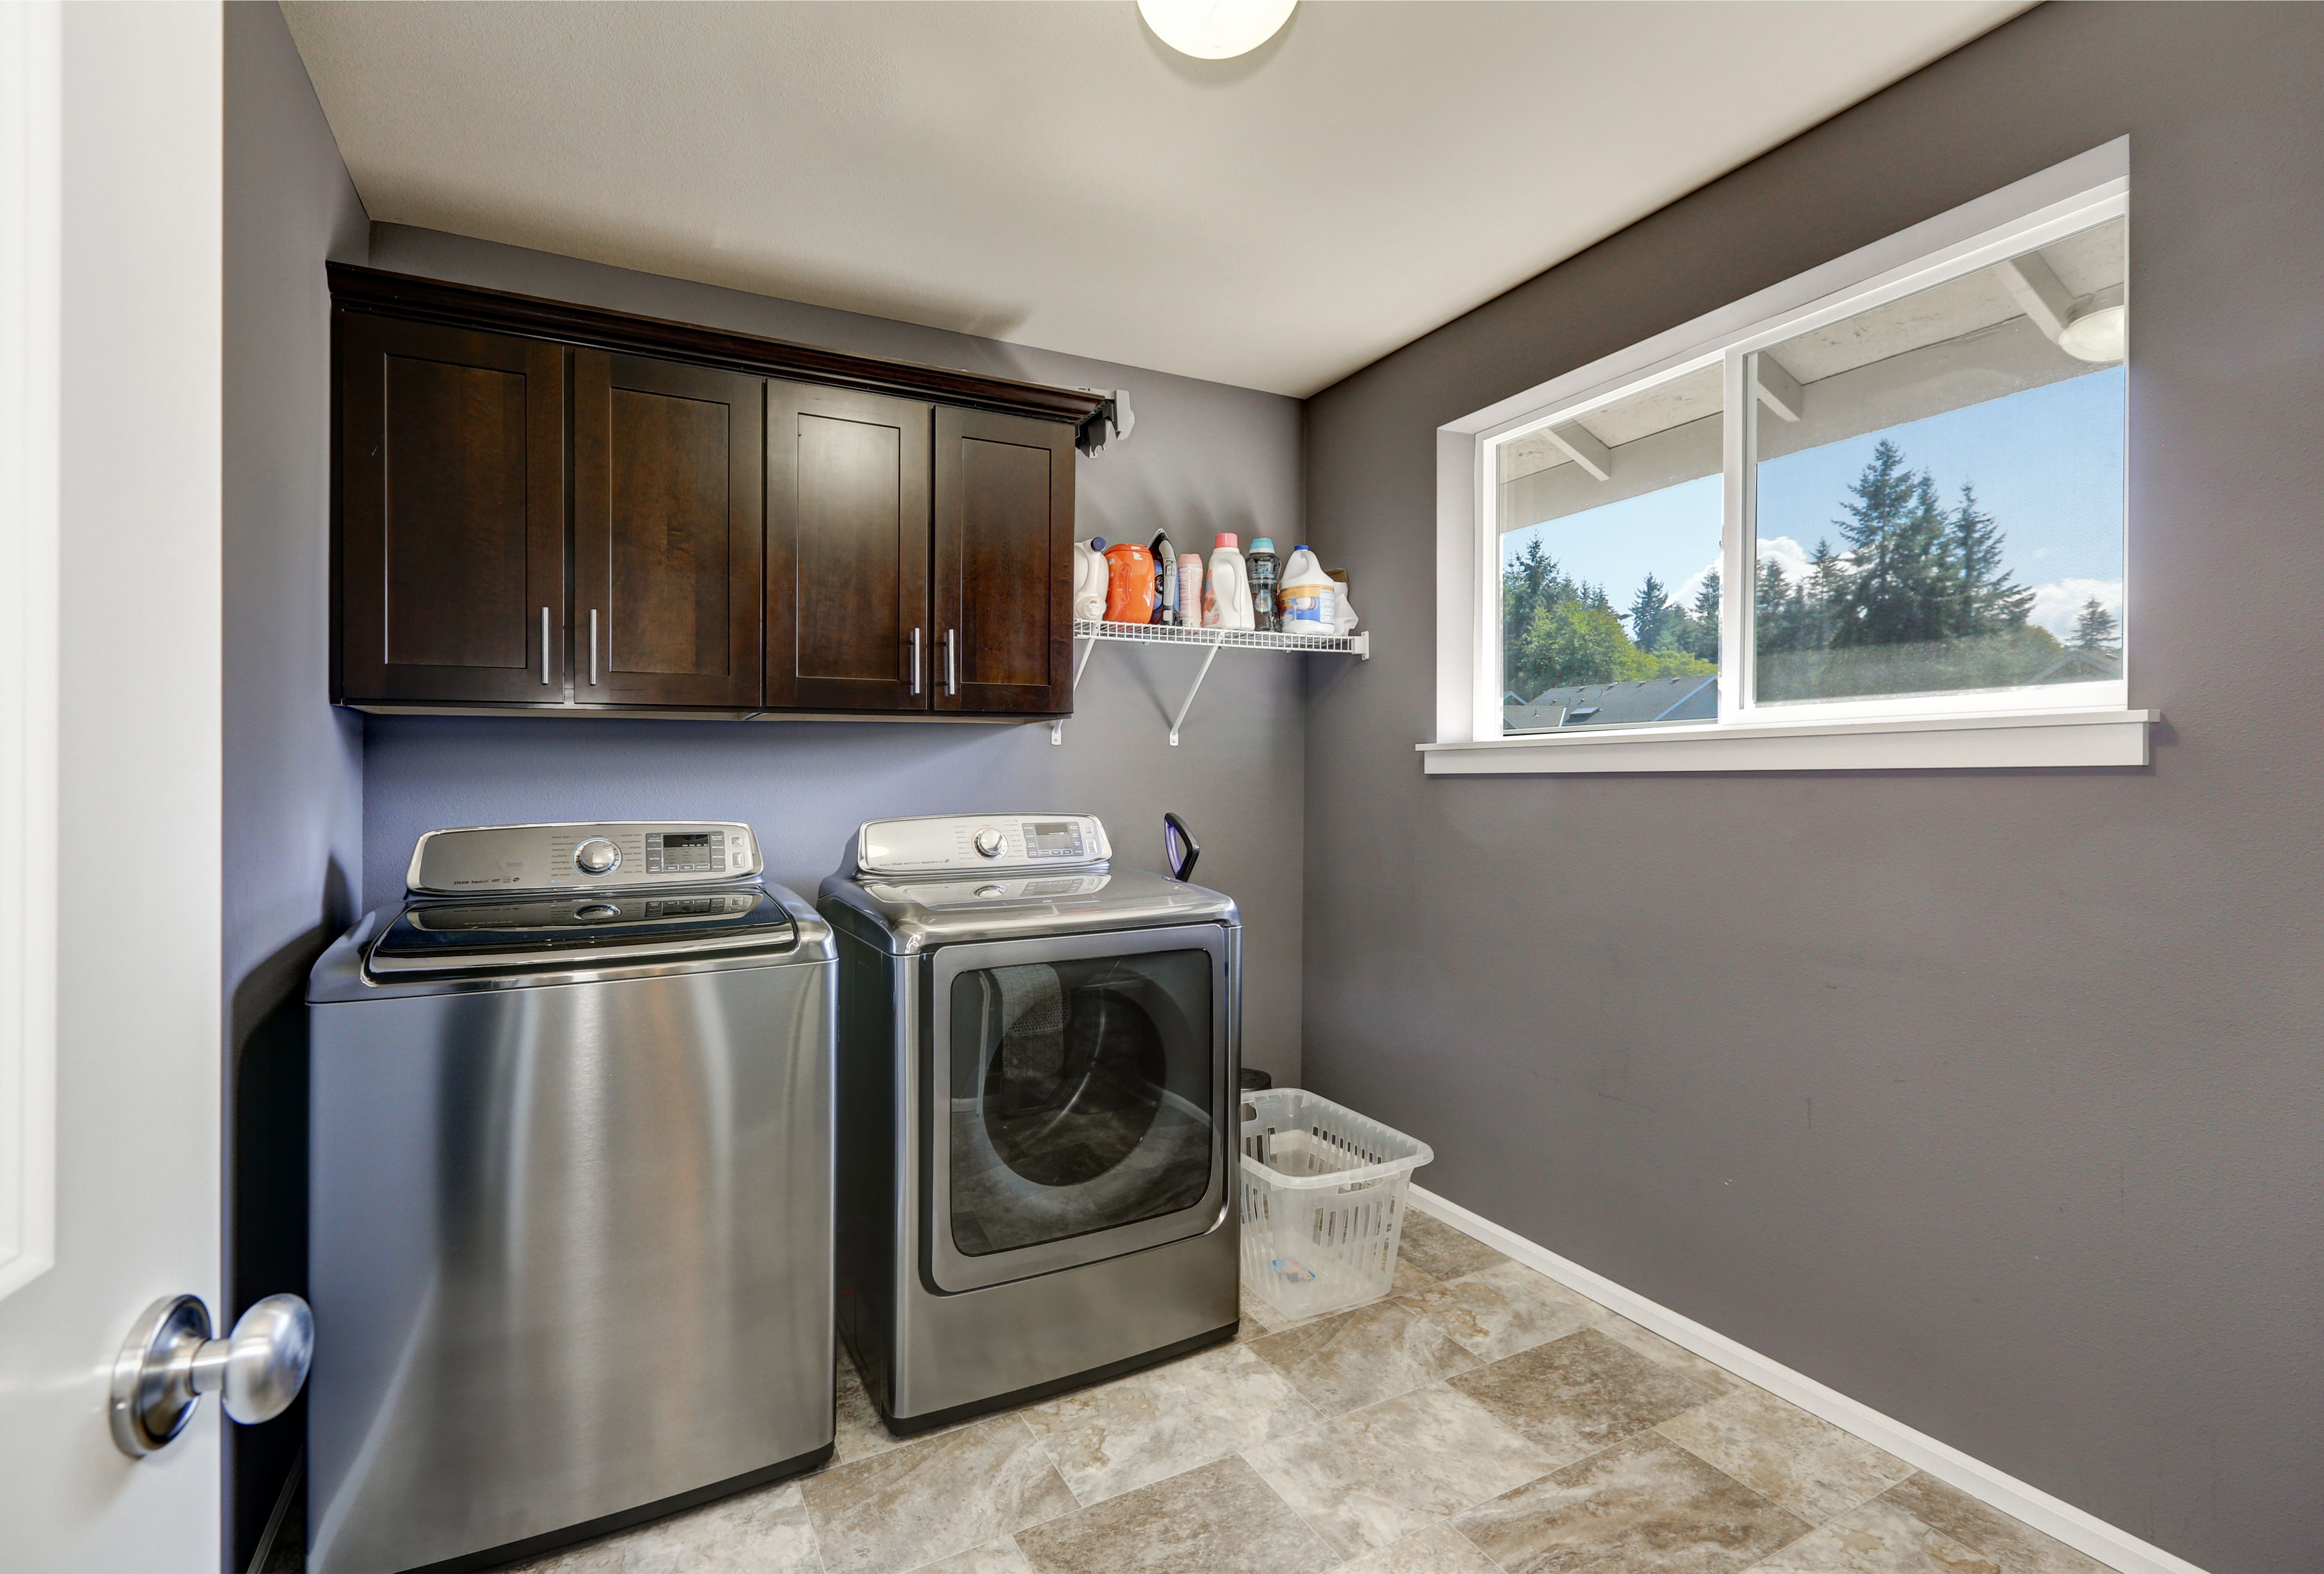 Best Of Stainless Steel Paint for Walls